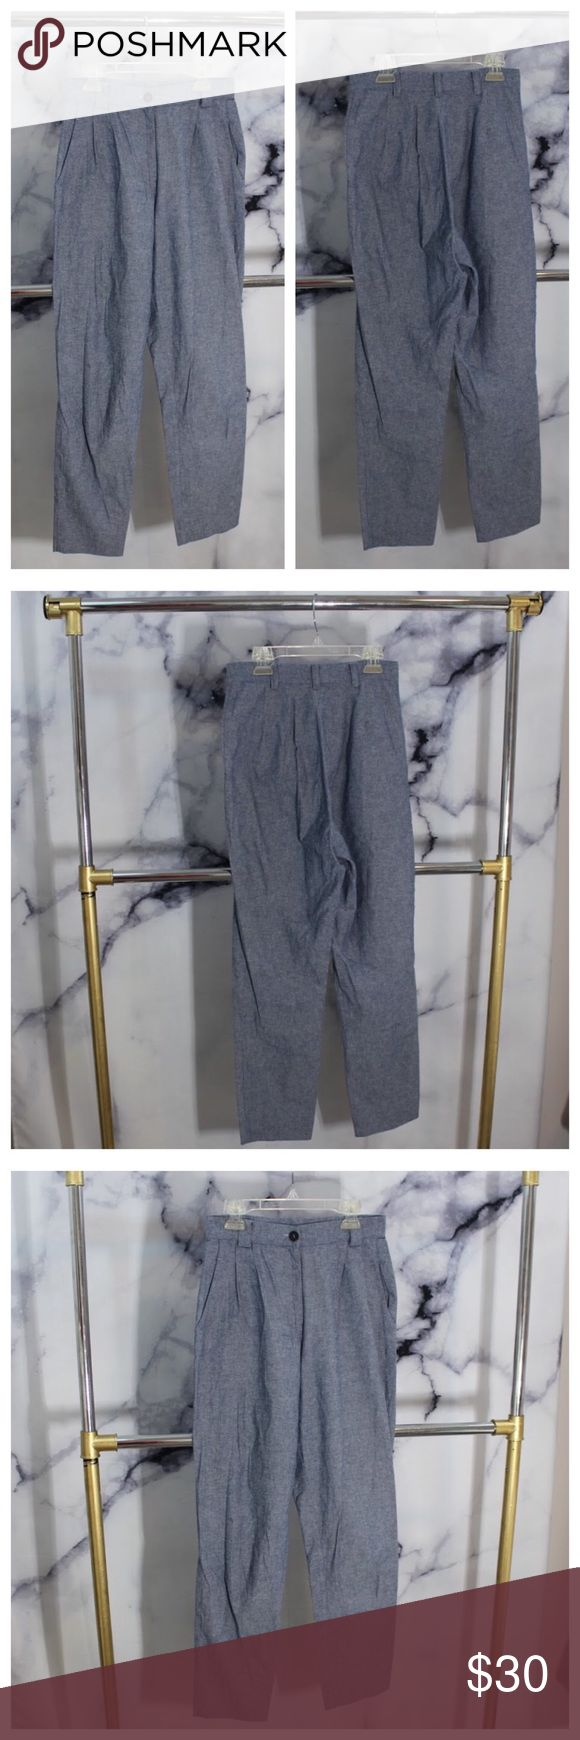 American Apparel High Waisted Blue Trouser Pant Perfect 10/10 condition! Beautiful Heathered blue comfortable Trouser Pant. Dress up or down! Breathable fabric. Size XS American Apparel Pants Skinny